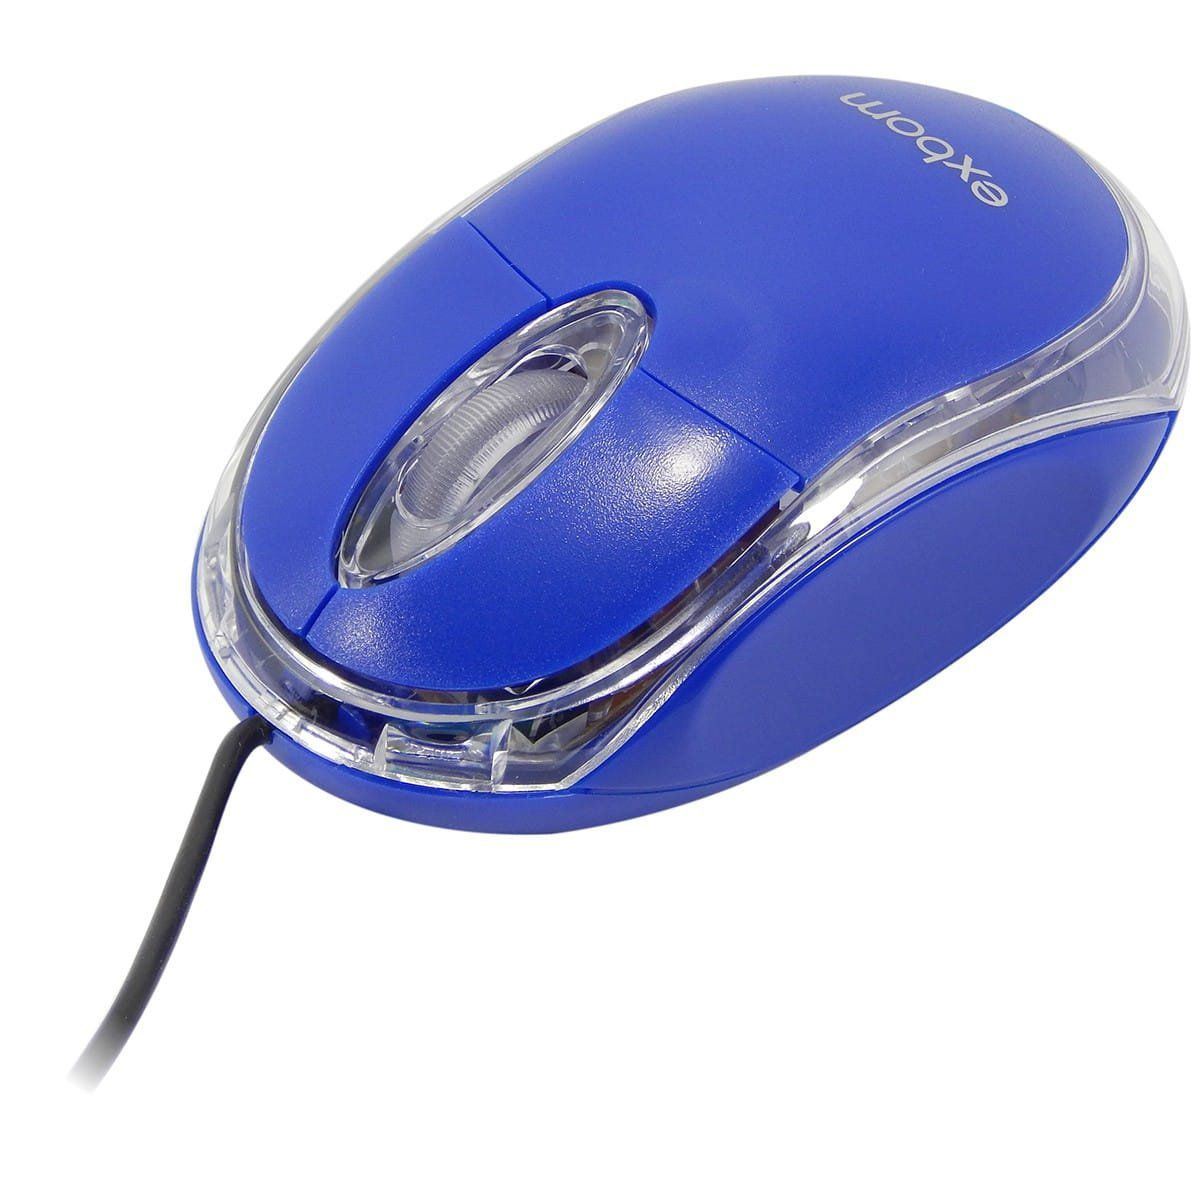 Mouse Óptico USB Exbom MS-10